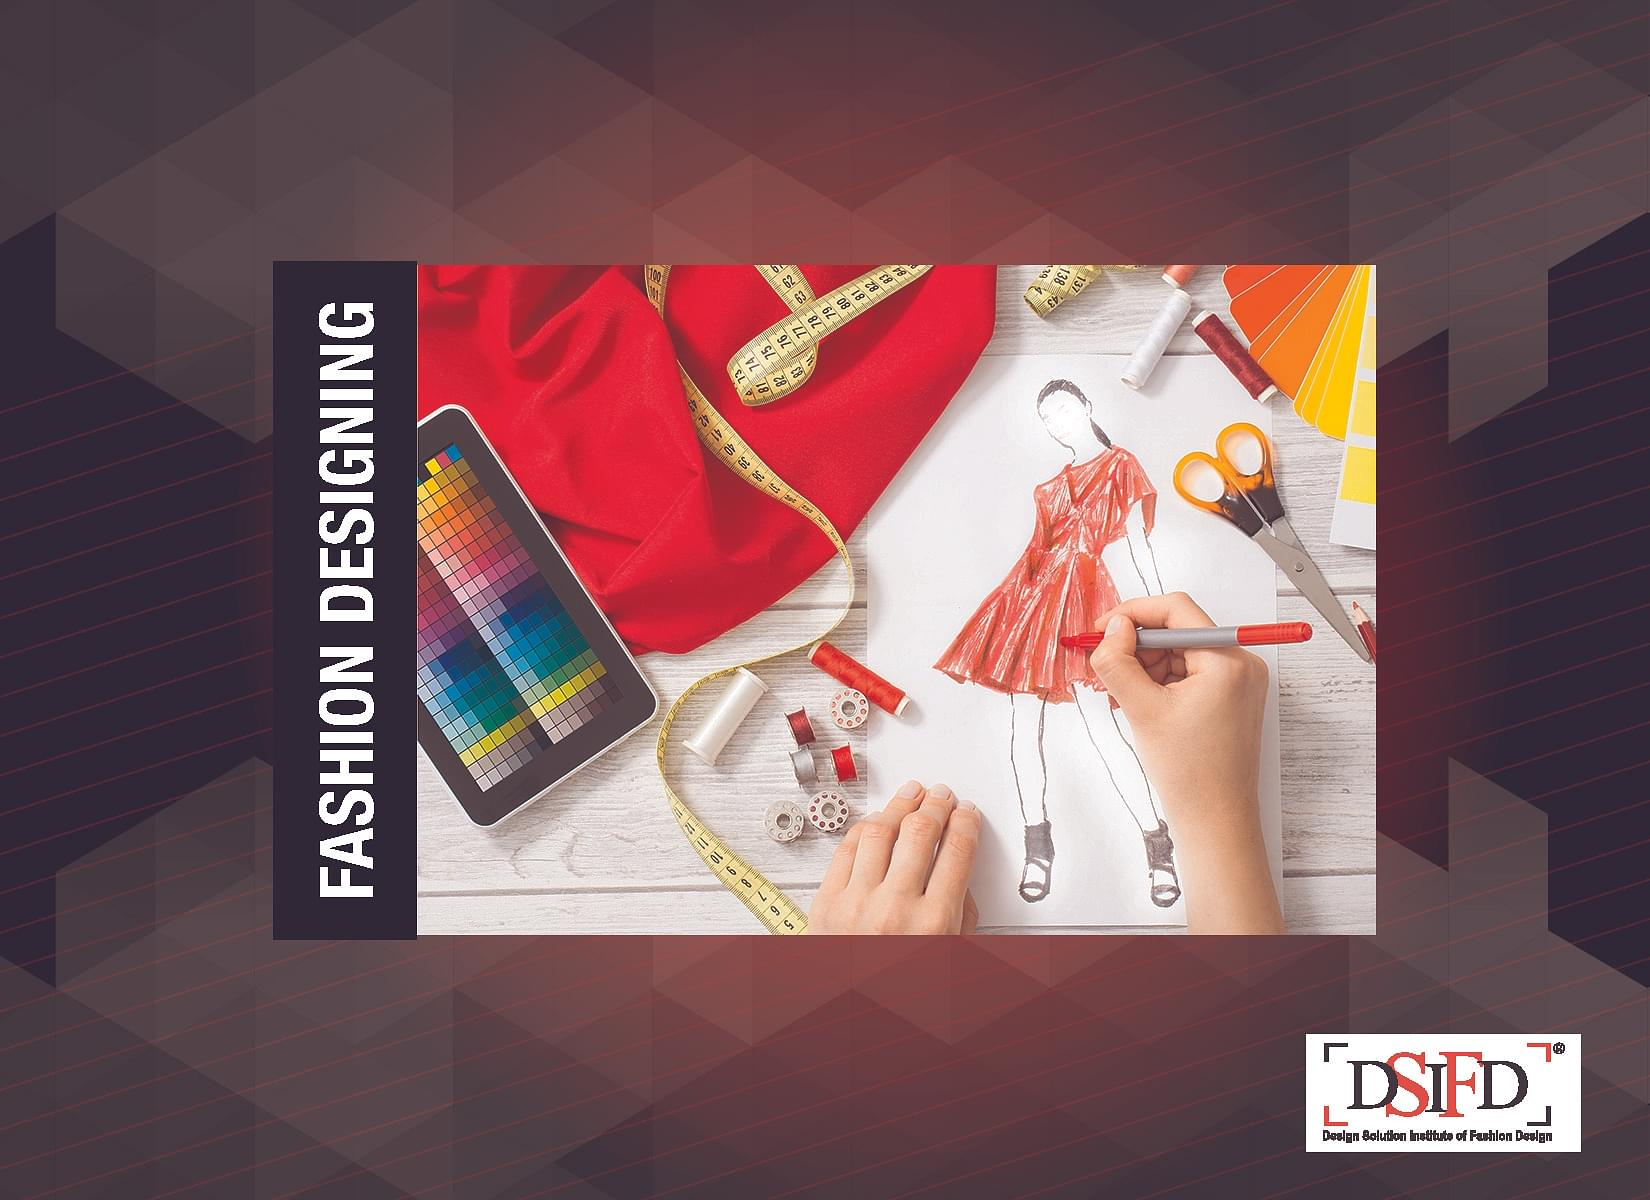 Design Solution Institute Of Fashion Design Dsifd Indore Admissions Contact Website Facilities 2020 2021